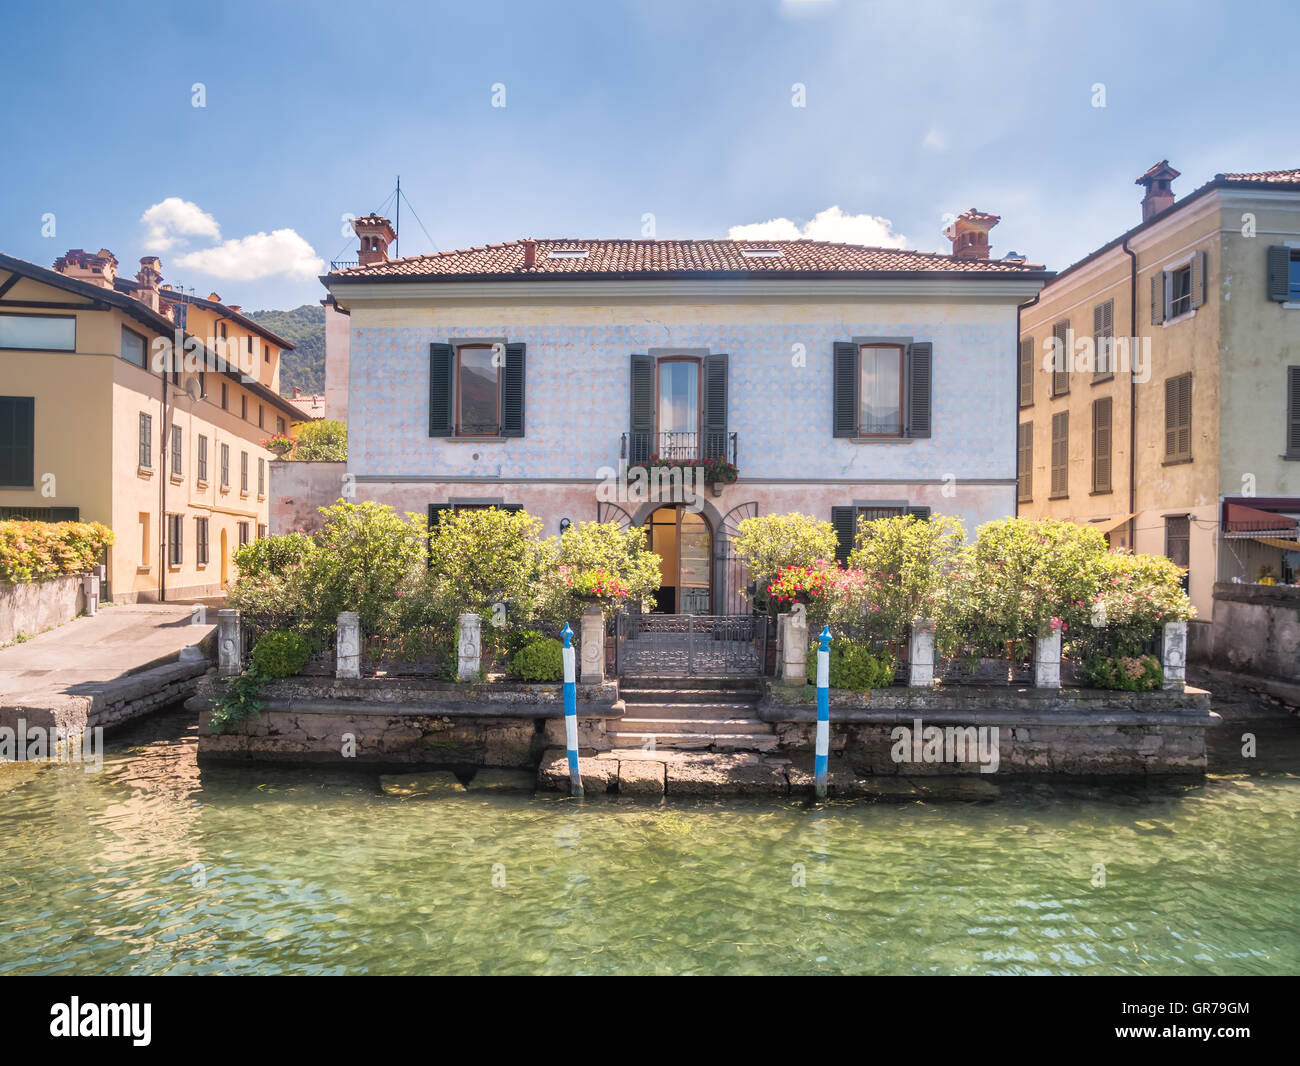 Homes in Iseo Village at lake Iseo in Italy - Stock Image